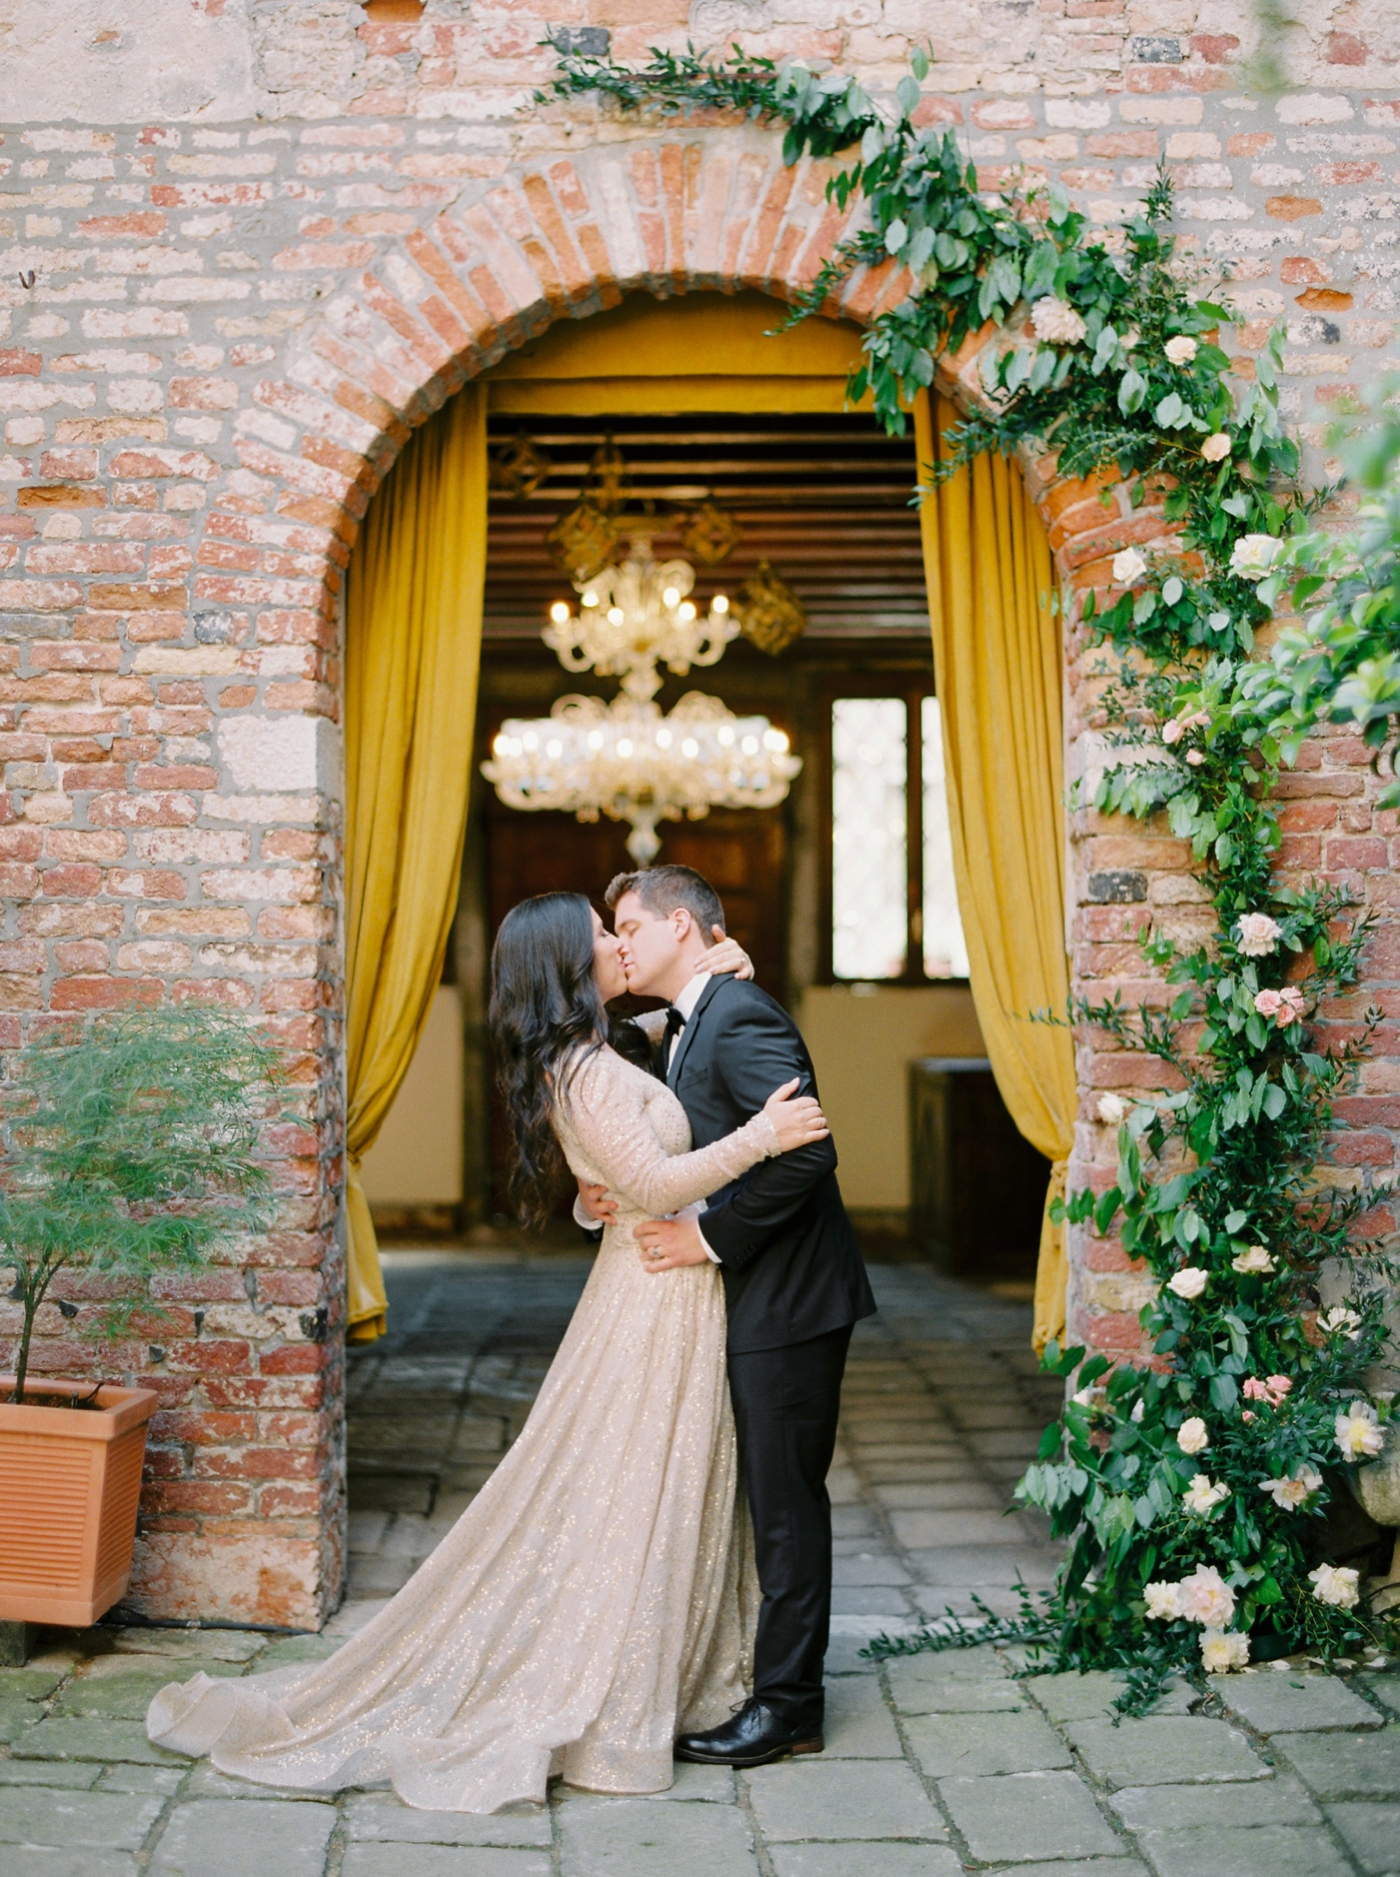 Venice italy wedding photographers | long sleeve wedding dress | italy vow renewal | justine milton fine art film photographer |vow renewal ceremony